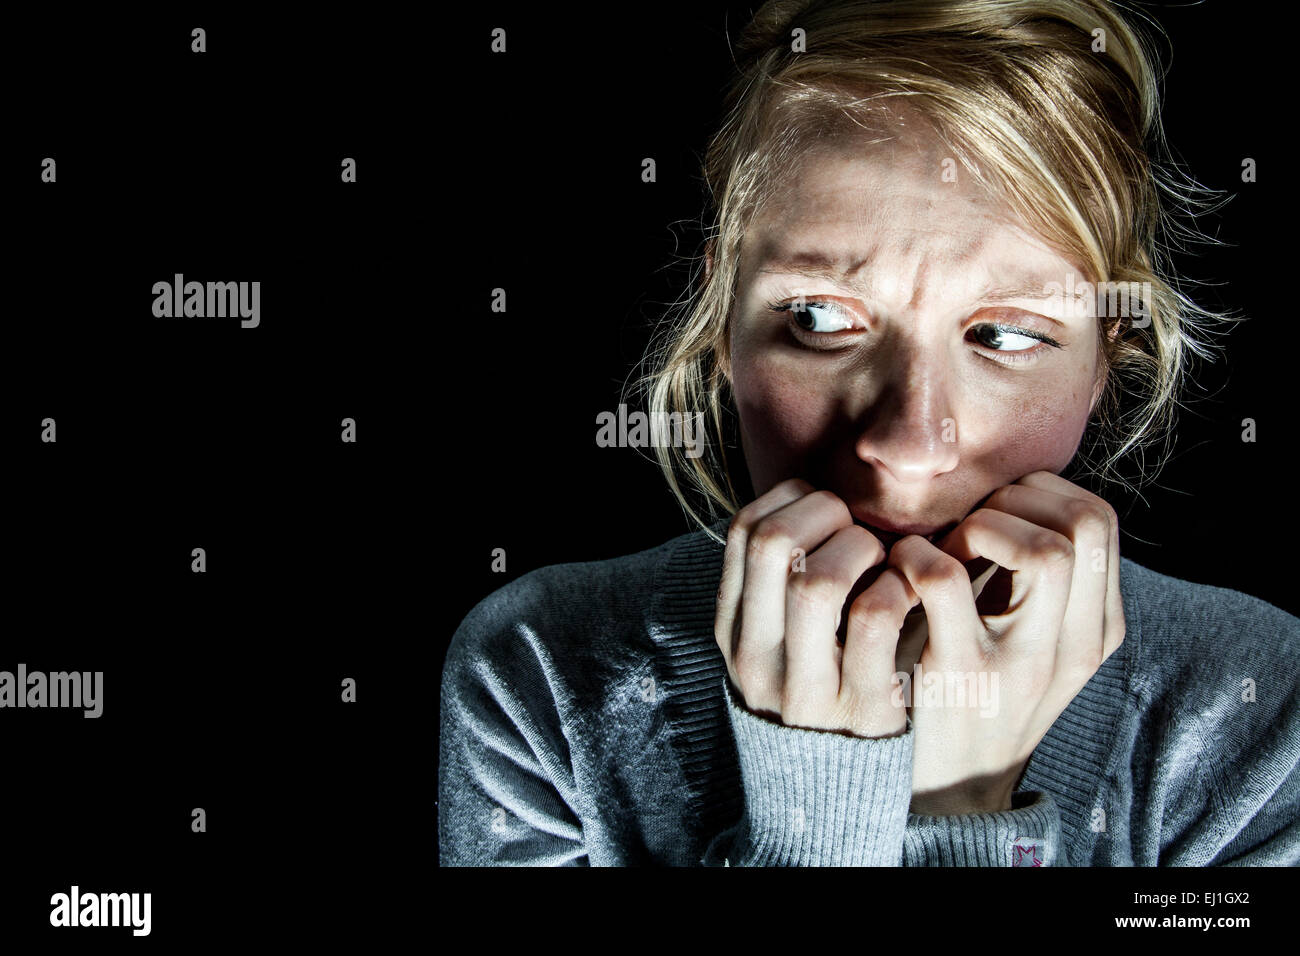 Scary Woman Afraid of something in the Dark - Stock Image